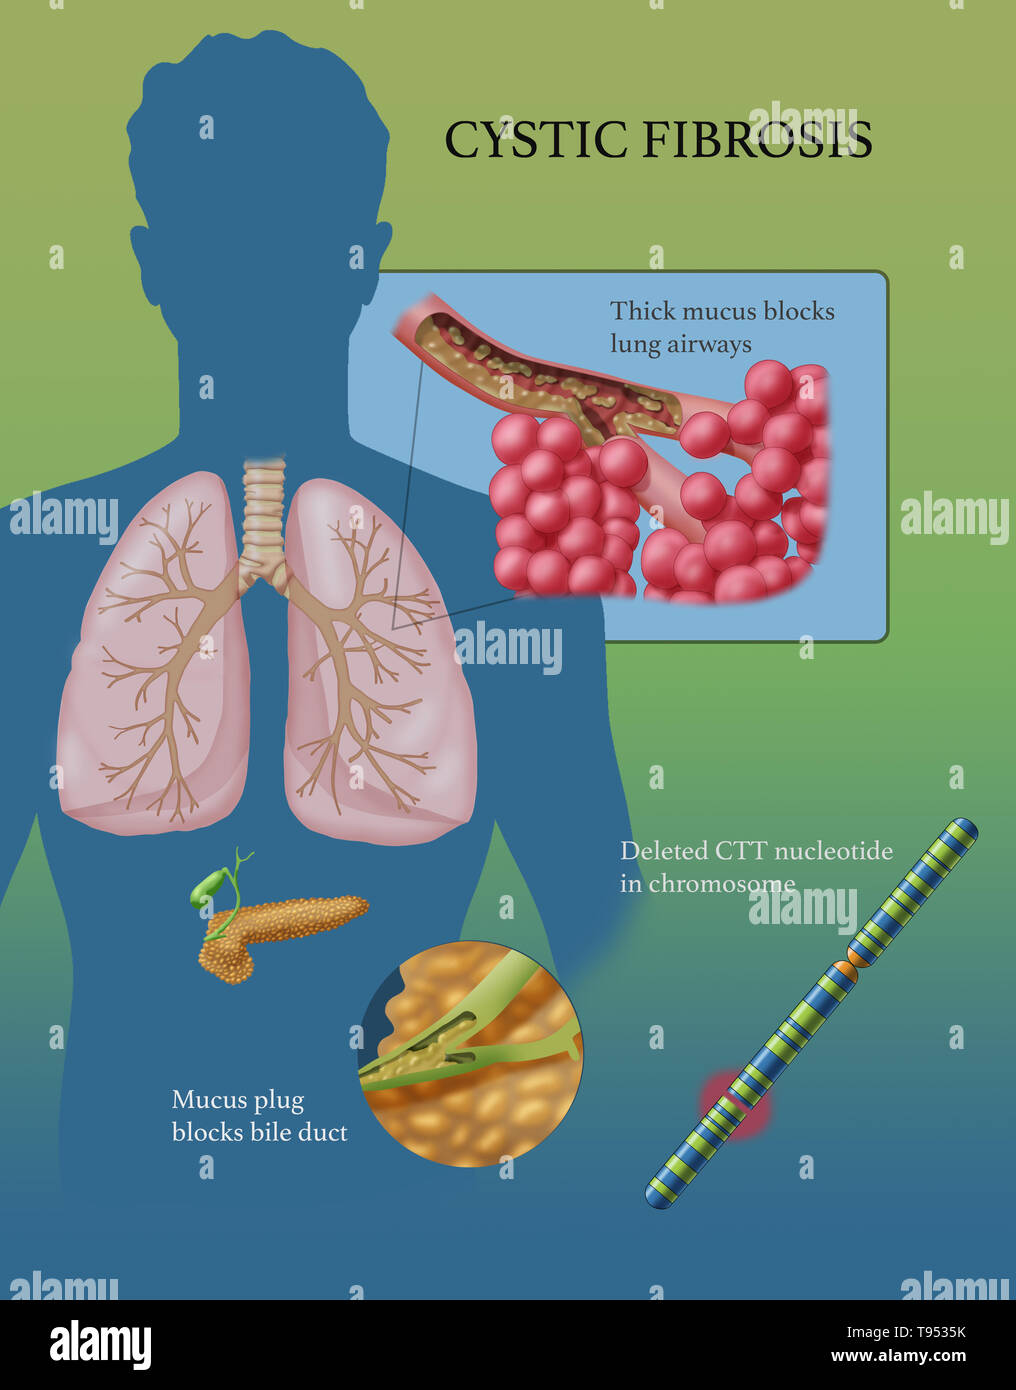 Cystic fibrosis (CF) is a genetic disorder that affects mostly the lungs, but also the pancreas, liver, kidneys, and intestine. Long-term issues include difficulty breathing and coughing up mucus as a result of frequent lung infections. Other signs and symptoms may include sinus infections, poor growth, fatty stool, clubbing of the fingers and toes, and infertility in some males. Different people may have different degrees of symptoms. - Stock Image